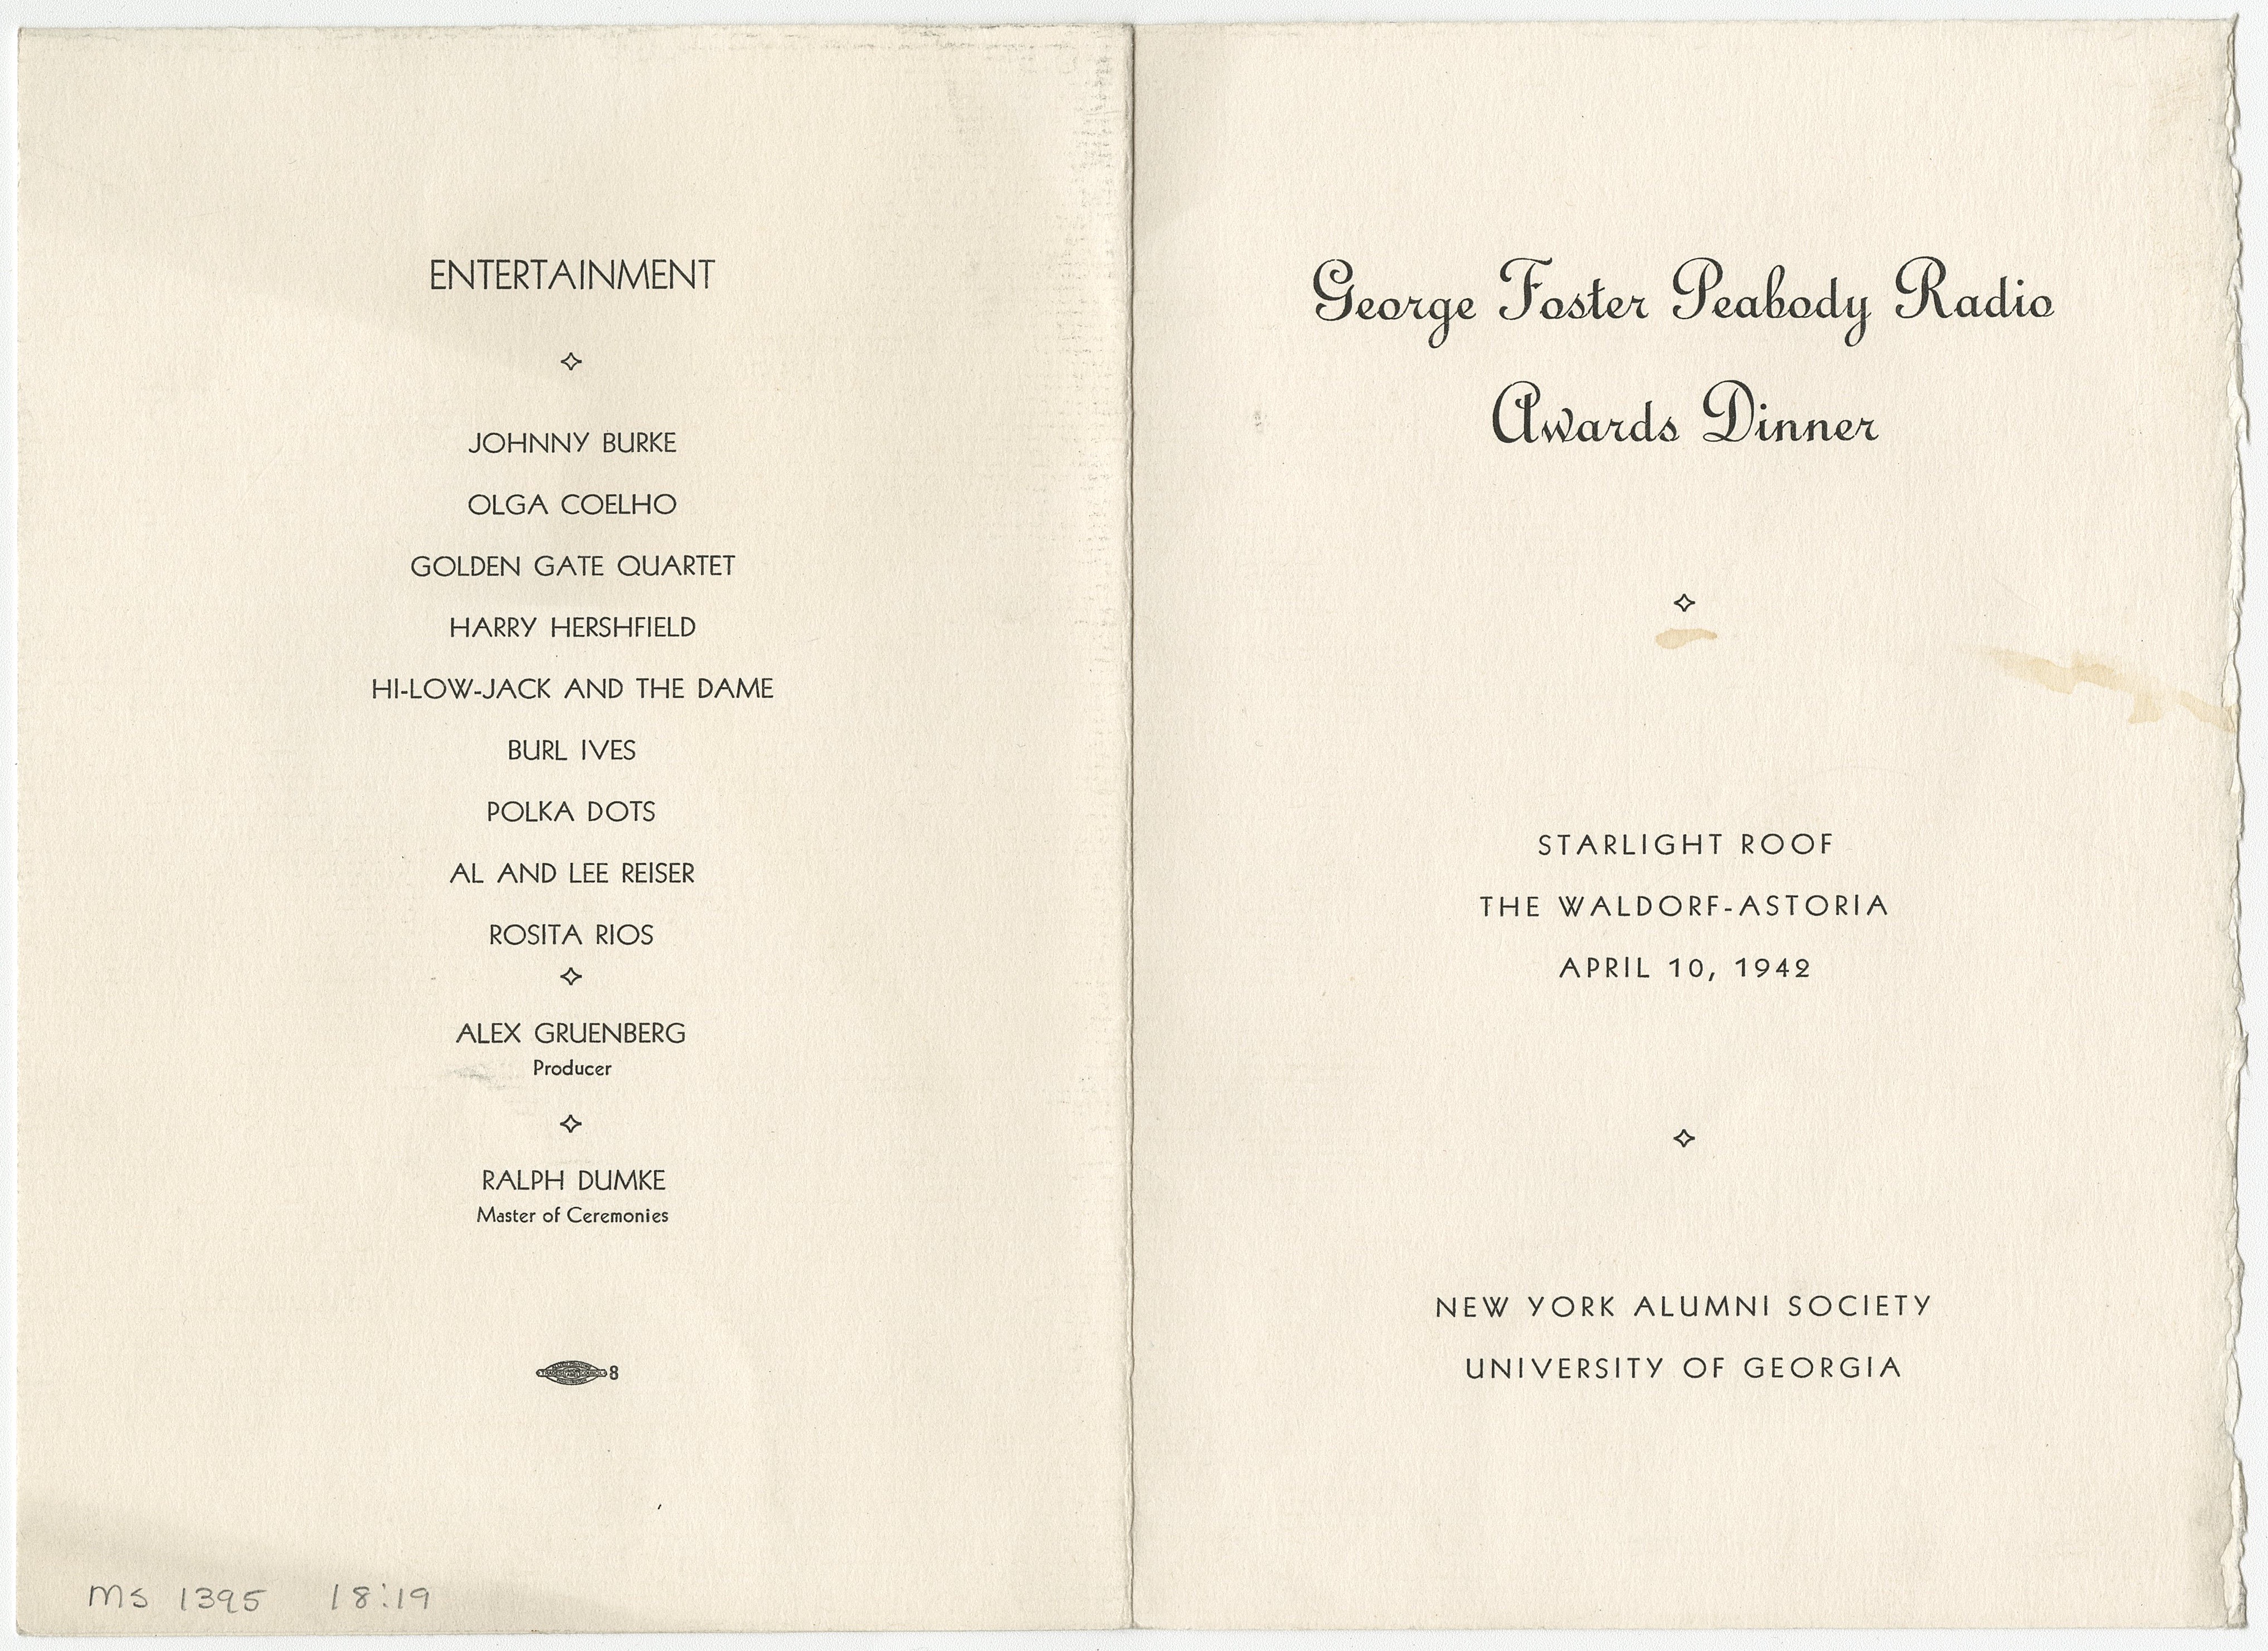 Outside of the menu for the 1942 George Foster Peabody Radio Awards Dinner, ms3000, Hargrett Rare Book and Manuscript Library, University of Georgia Libraries.